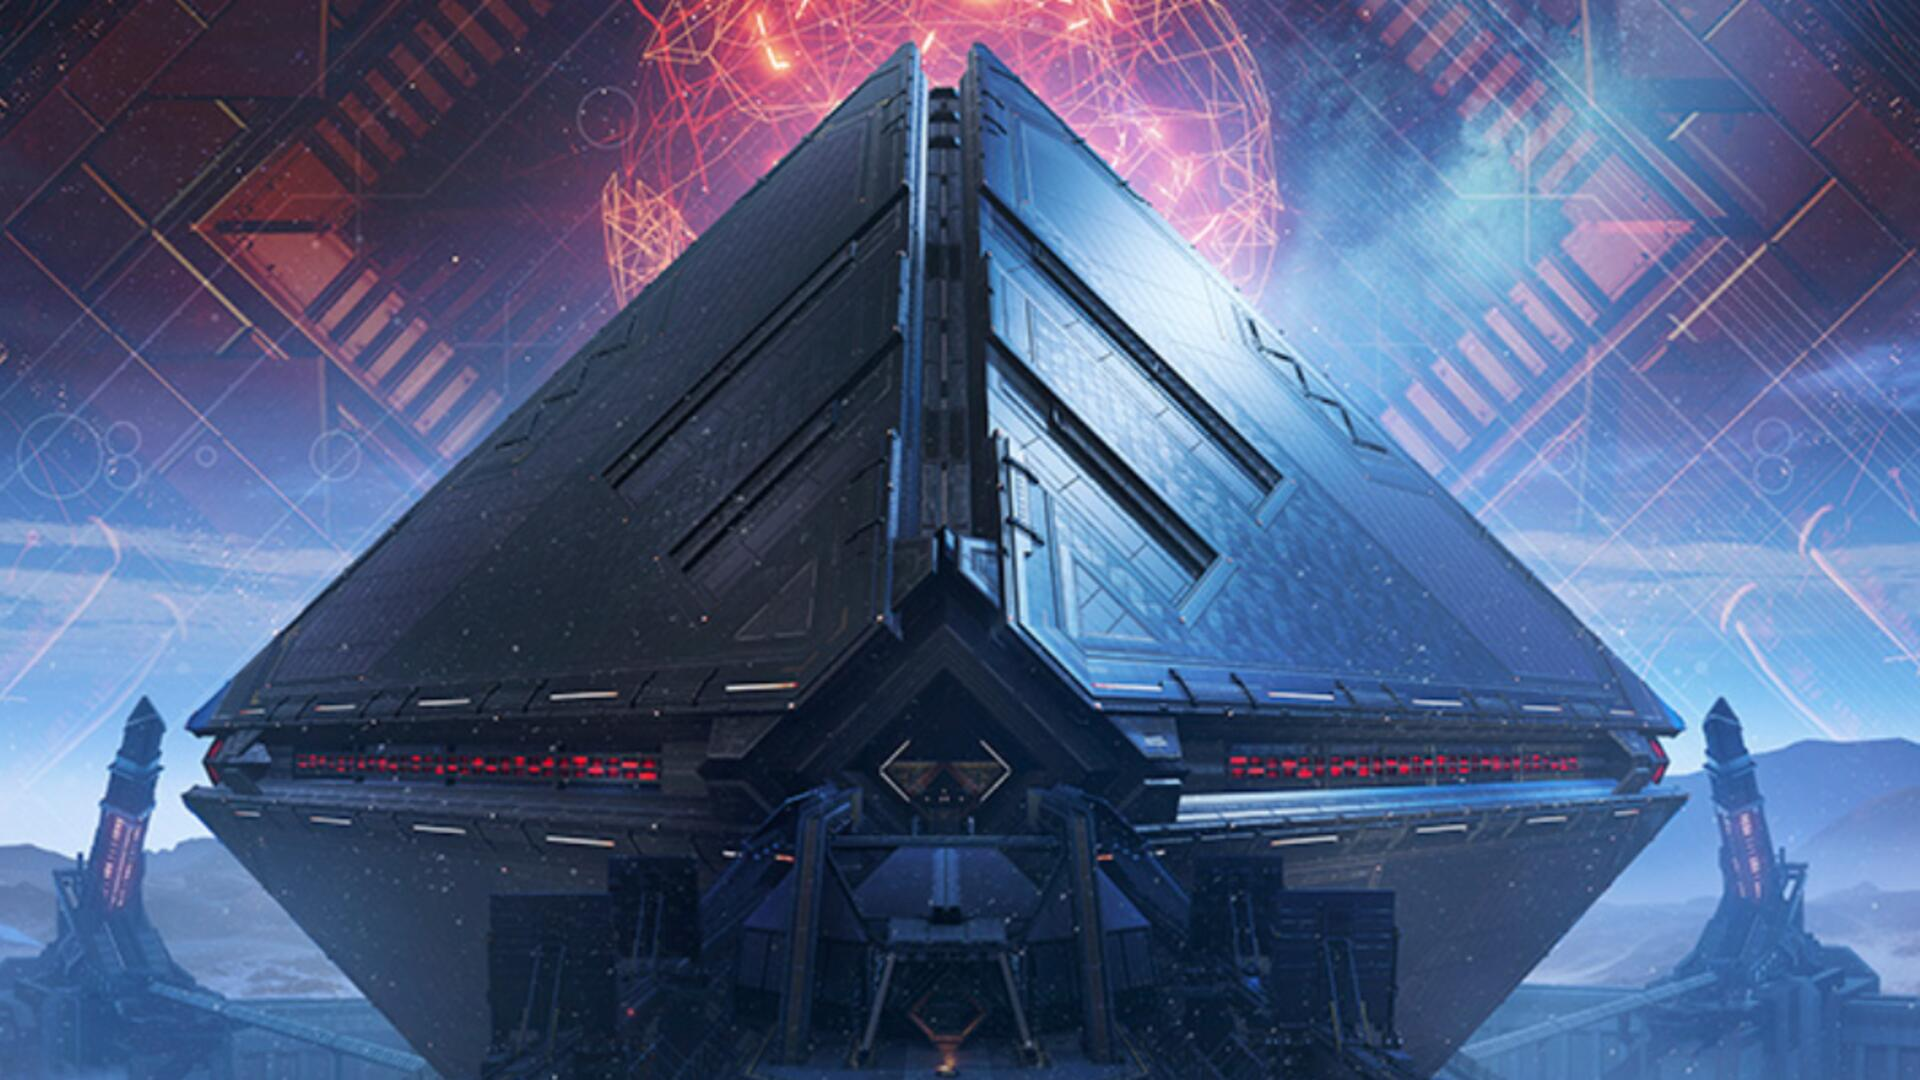 Destiny 2 Getting New Warmind Expansion, Additional Updates Detailed